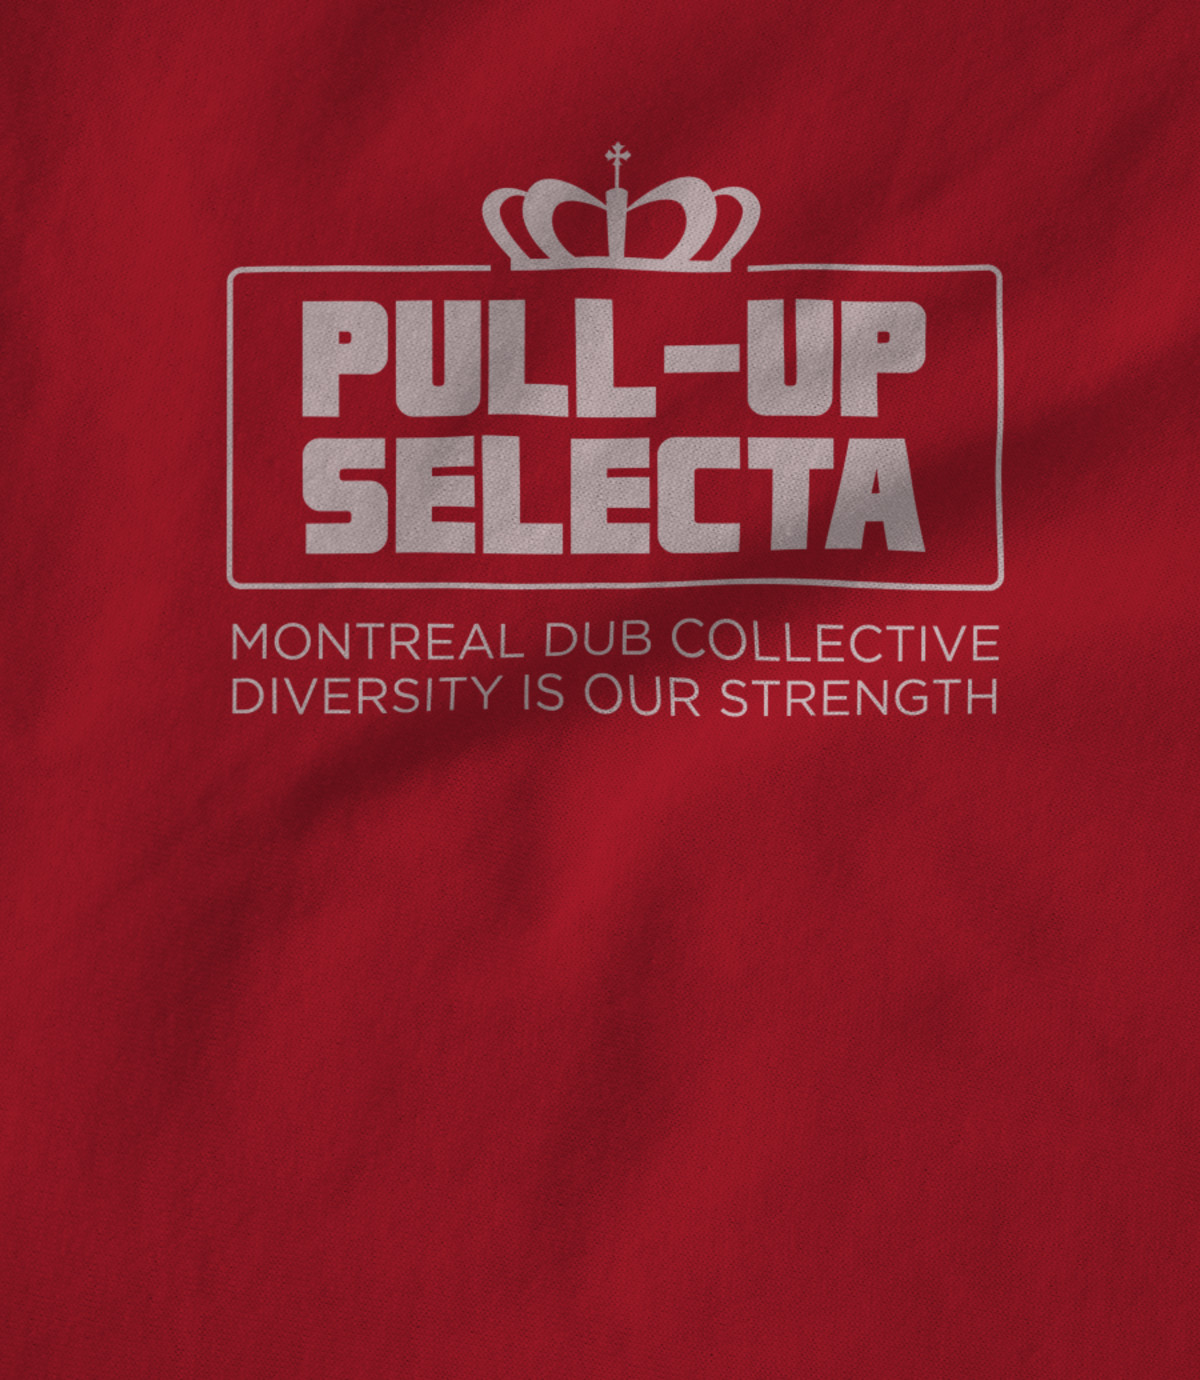 Pull up selecta mtl pull up dub collective  black  1549640274